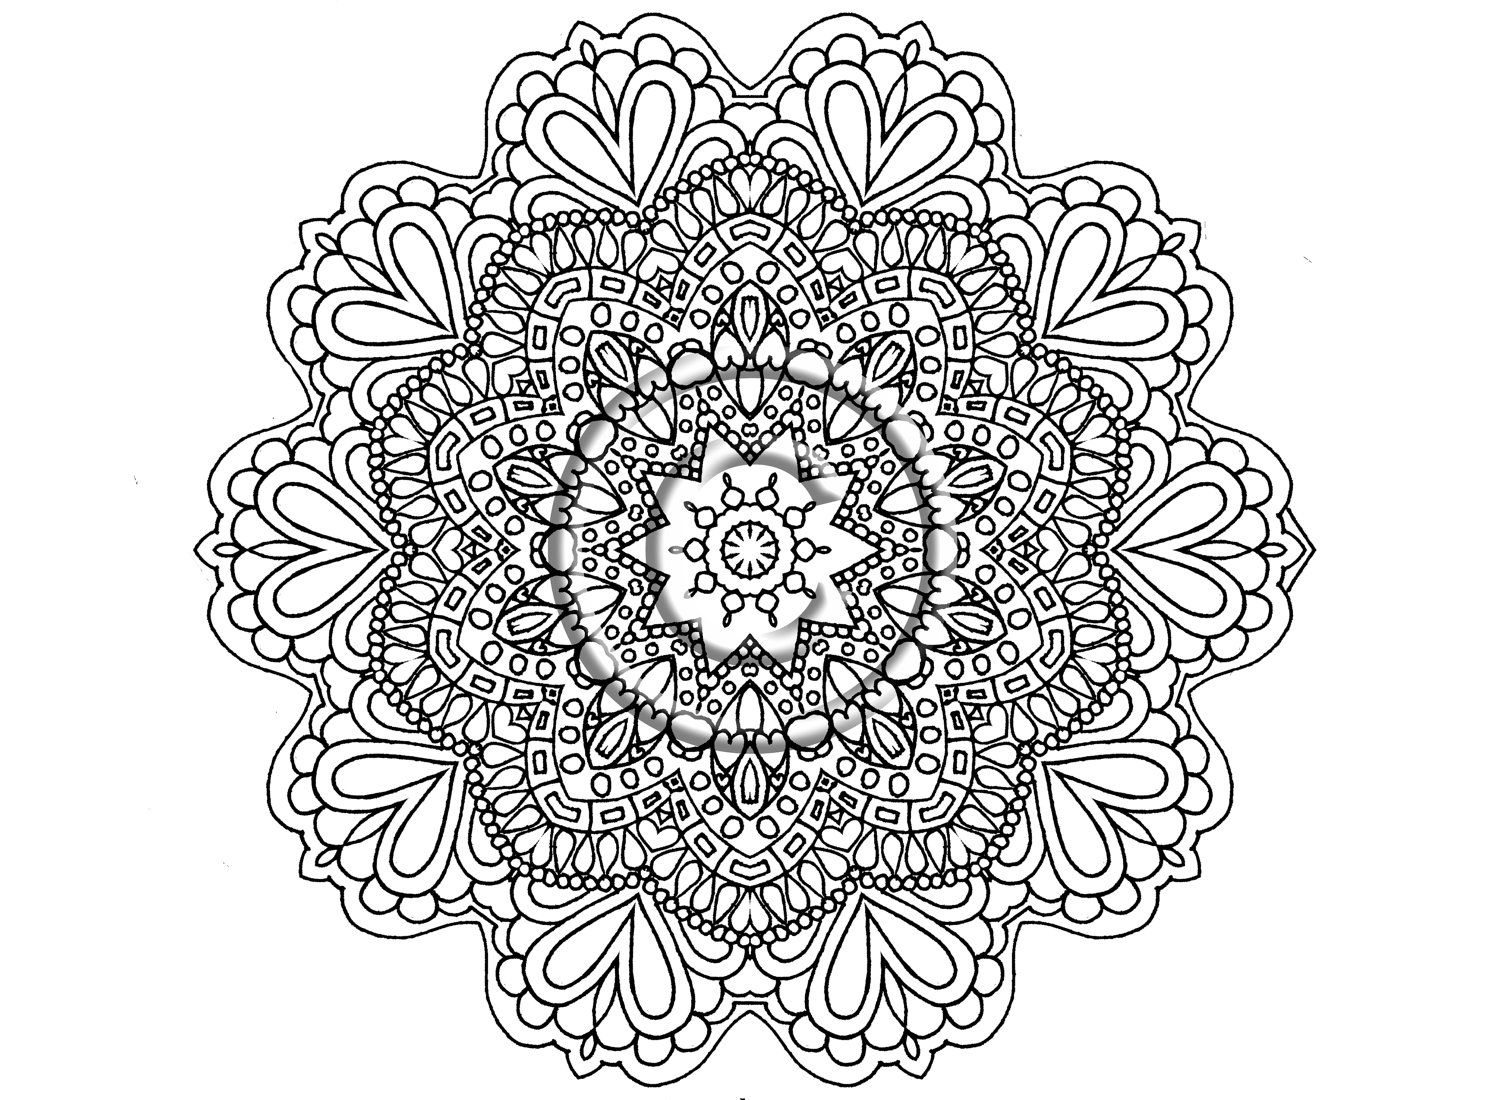 shelly beauchamp zen tangles coloring pages | Digital Download Coloring Page Hand Drawn Zentangle ...